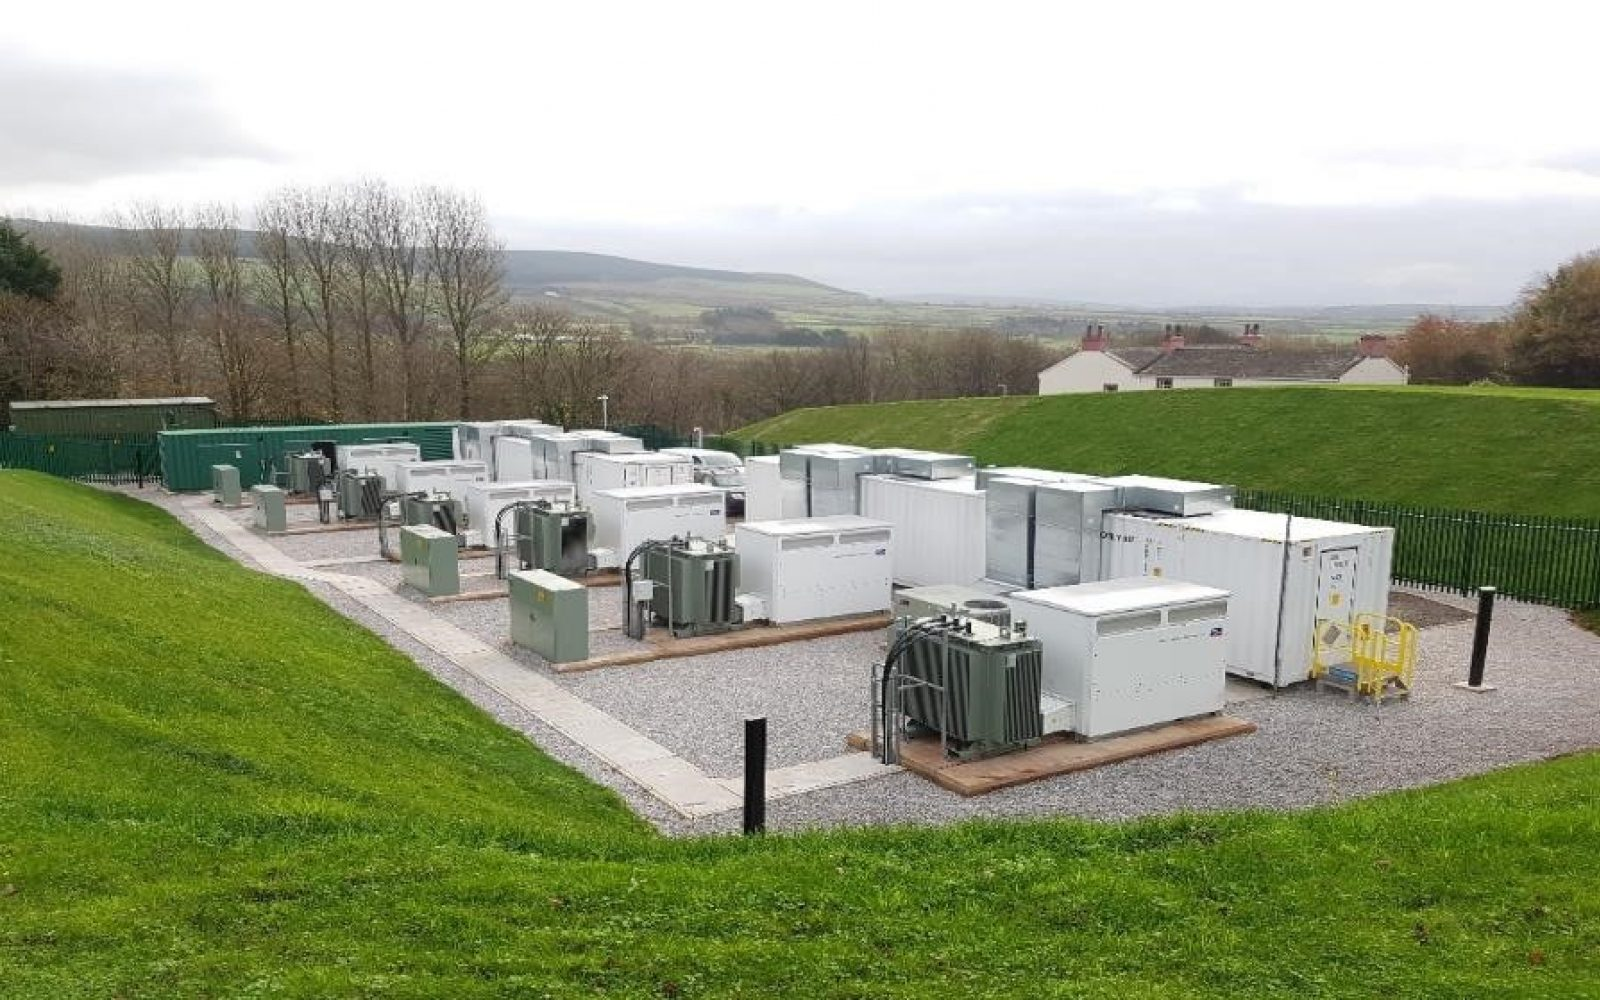 NEC's GSS Grid Storage Solution has previously been used in the UK at VLC Energy's Cleator project (pictured). Image: NEC.